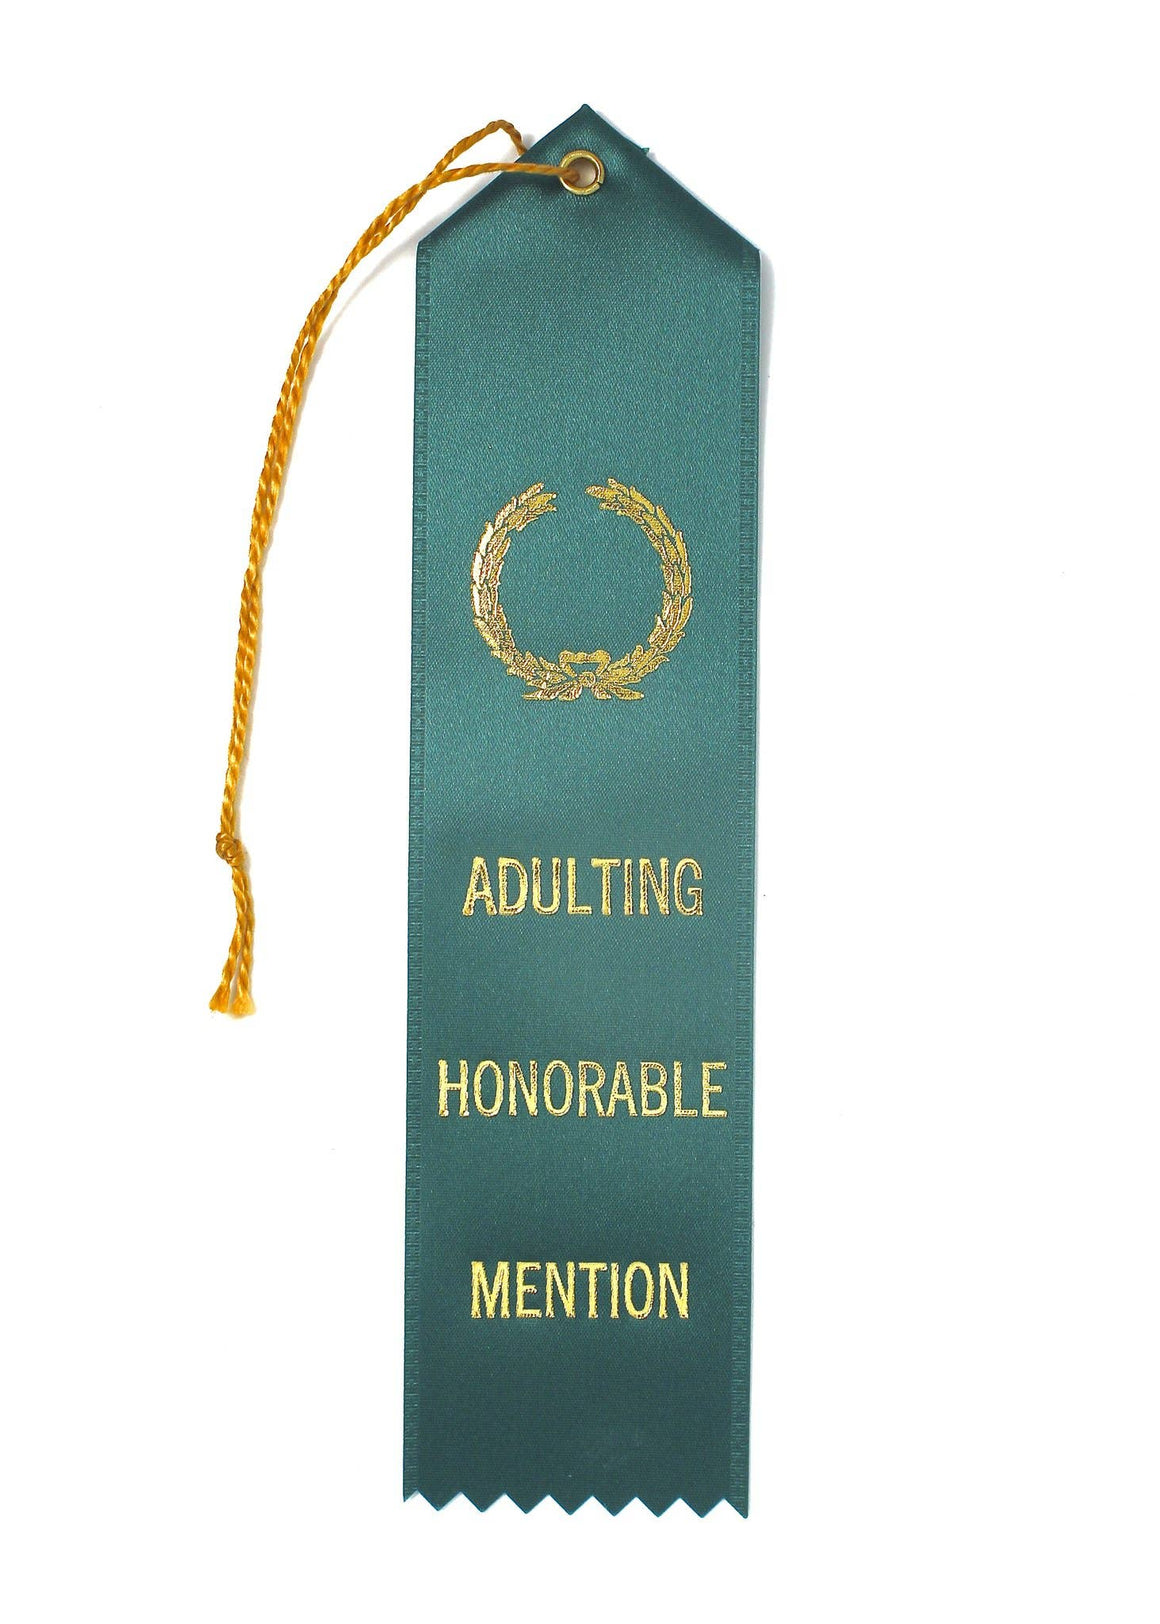 Adulting Honorable Mention